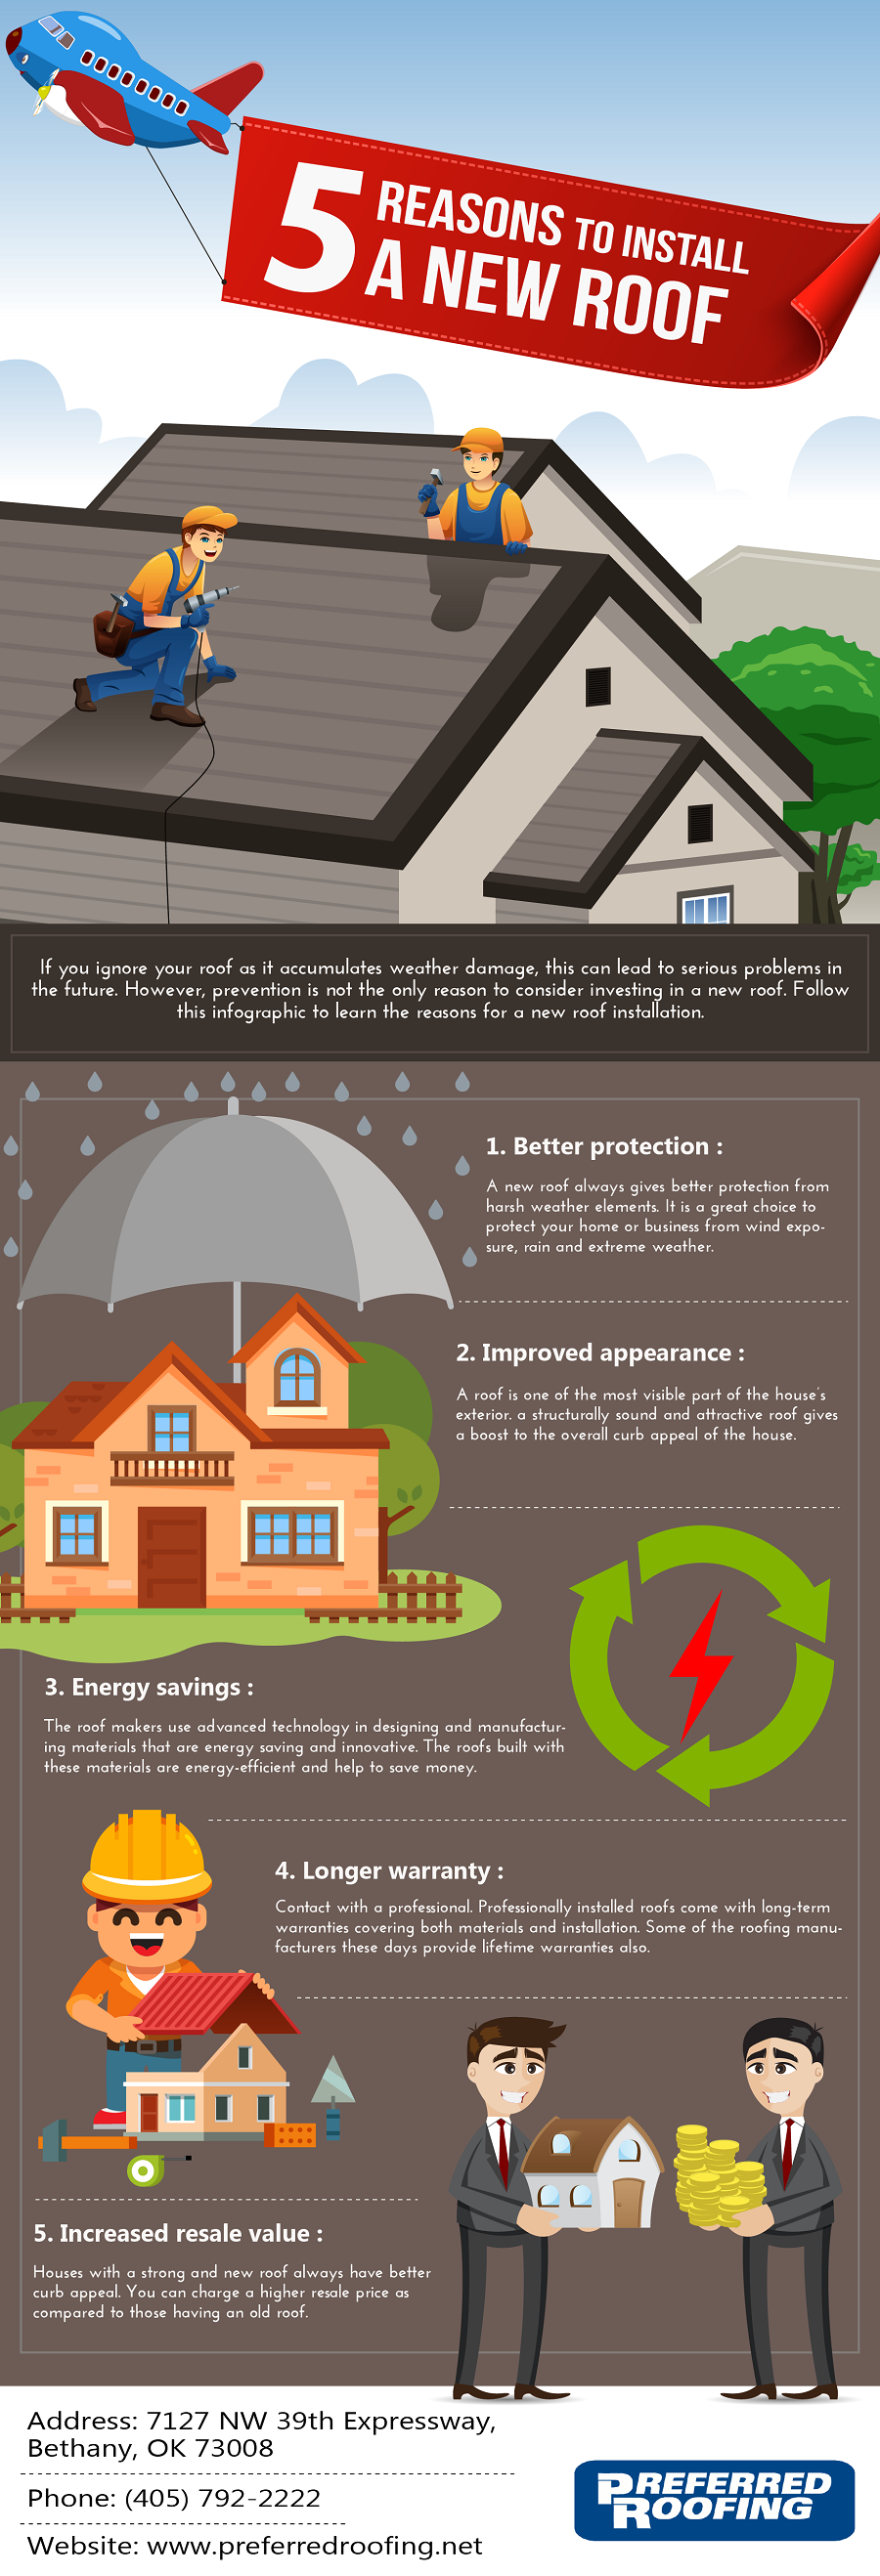 5 reasons to install new roof